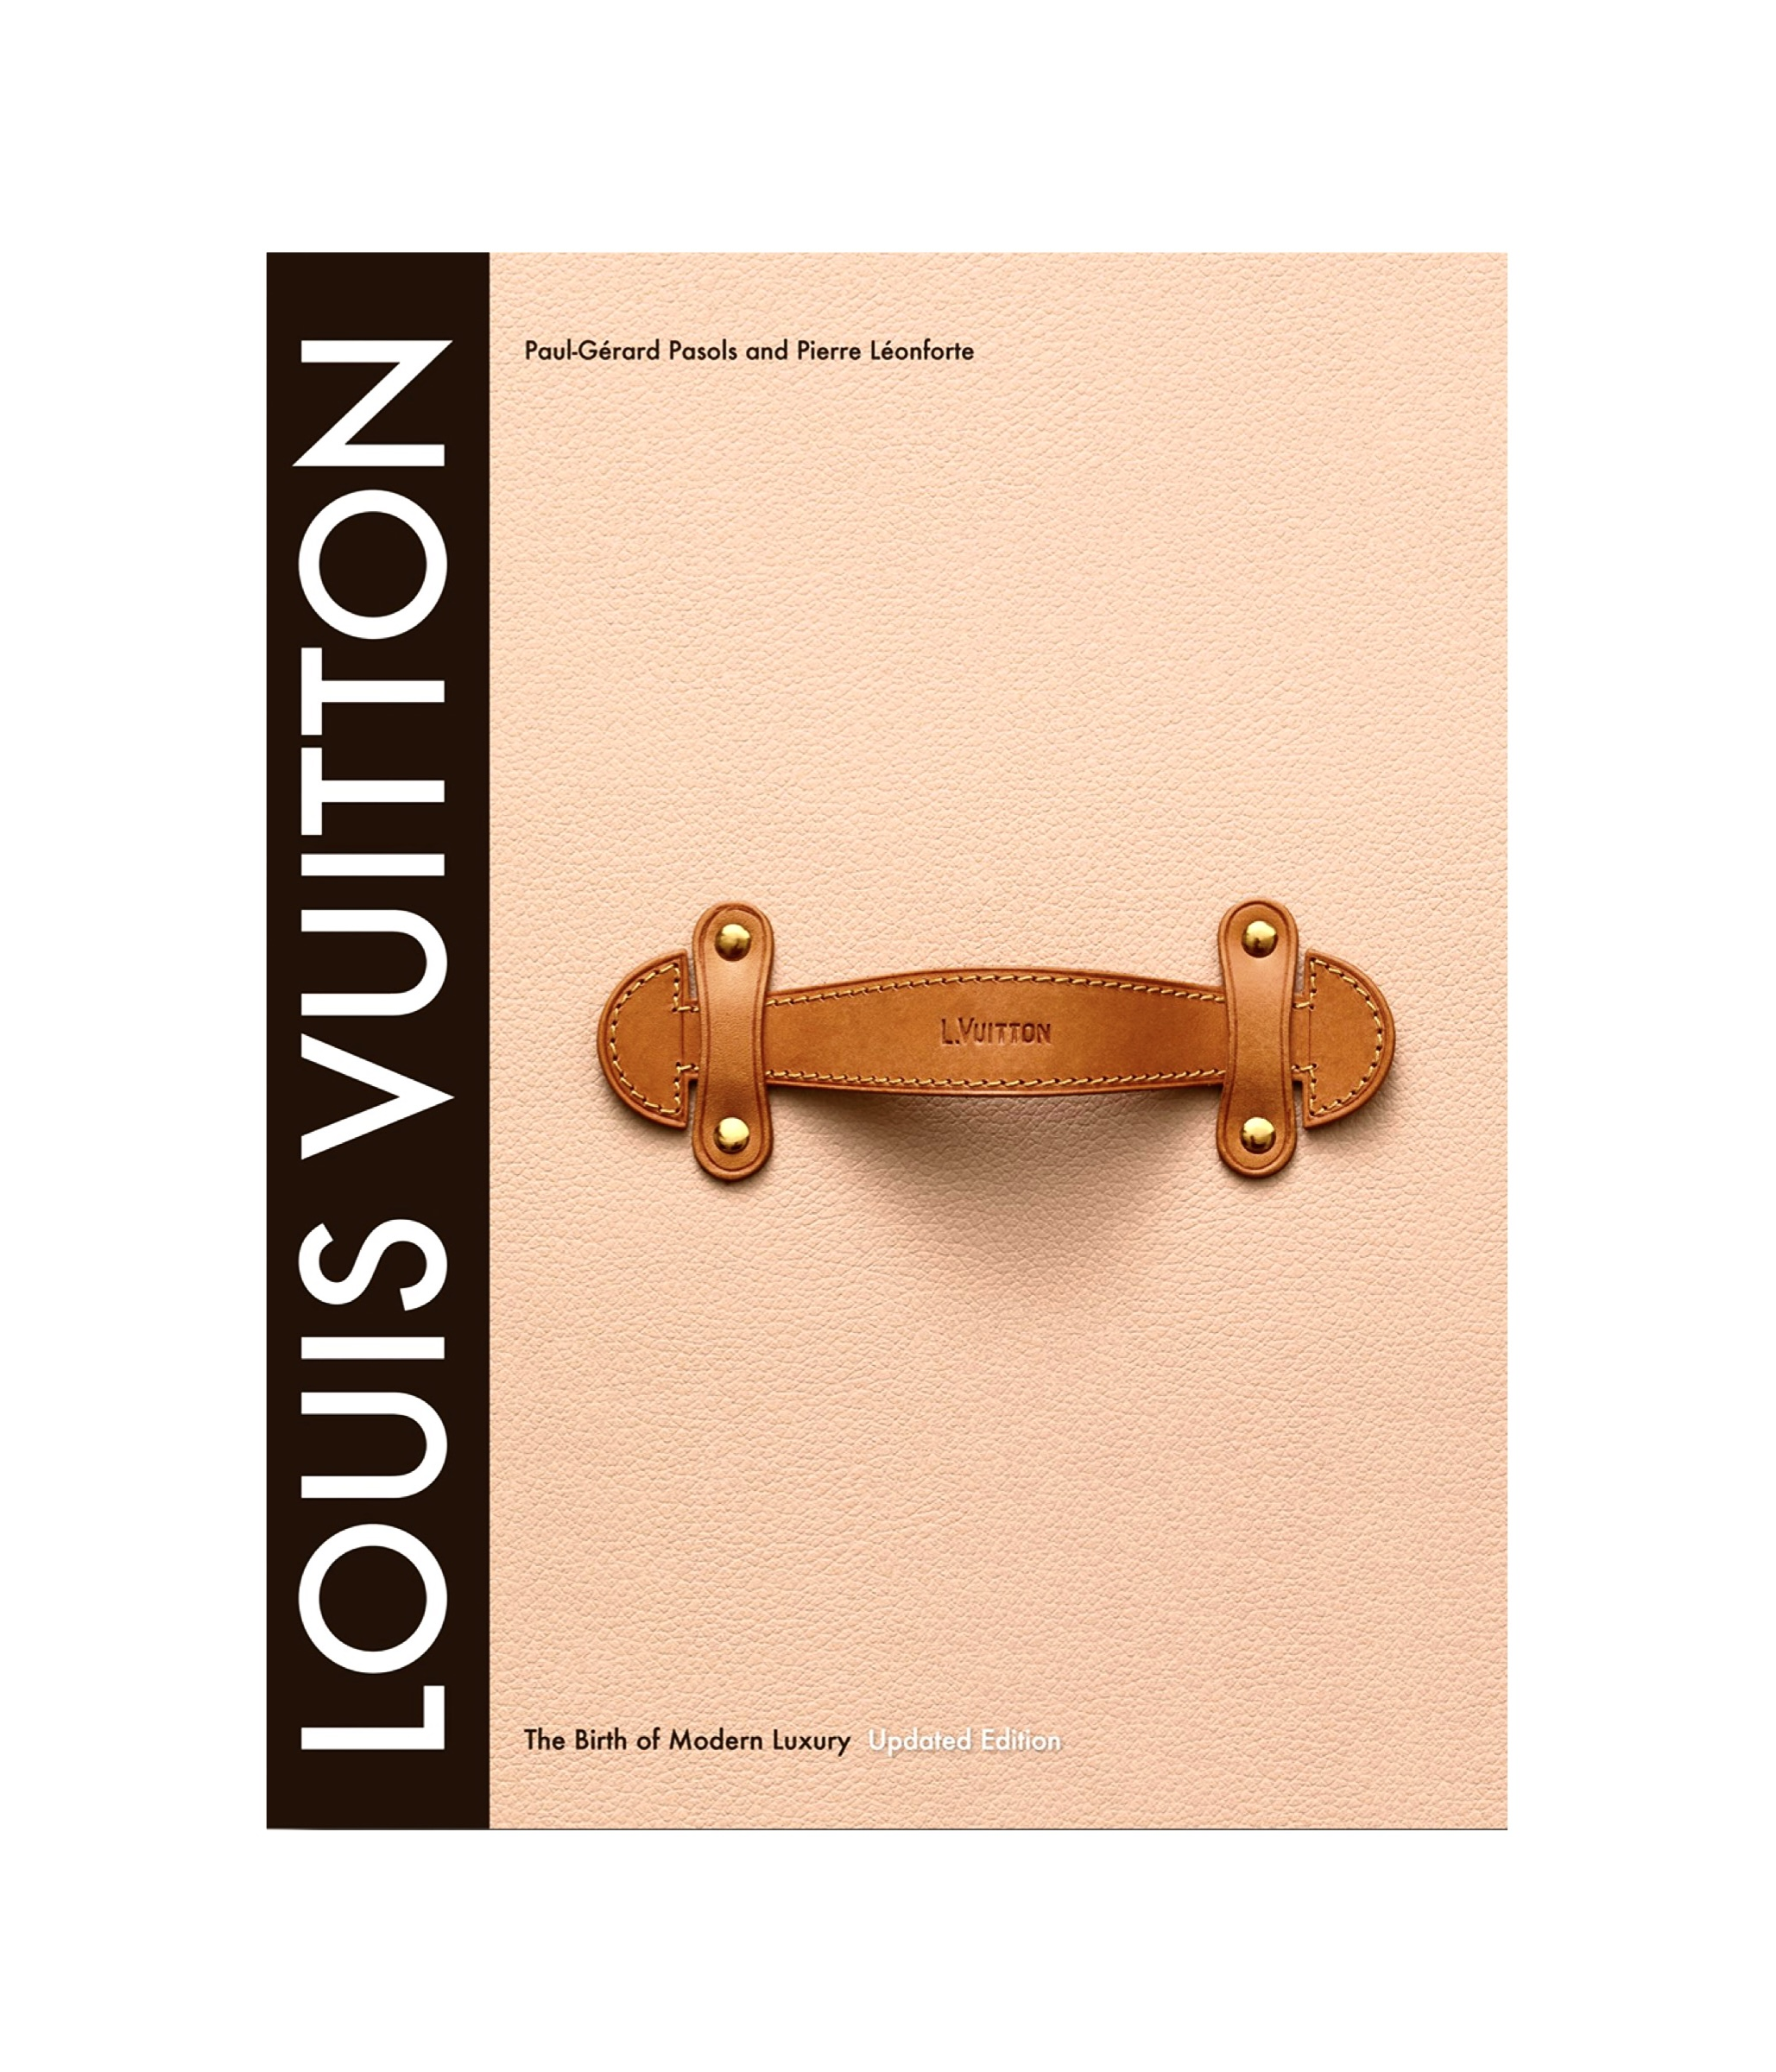 Louis Vuitton: The Birth of Modern Luxury Fashion IMAGE BY ME